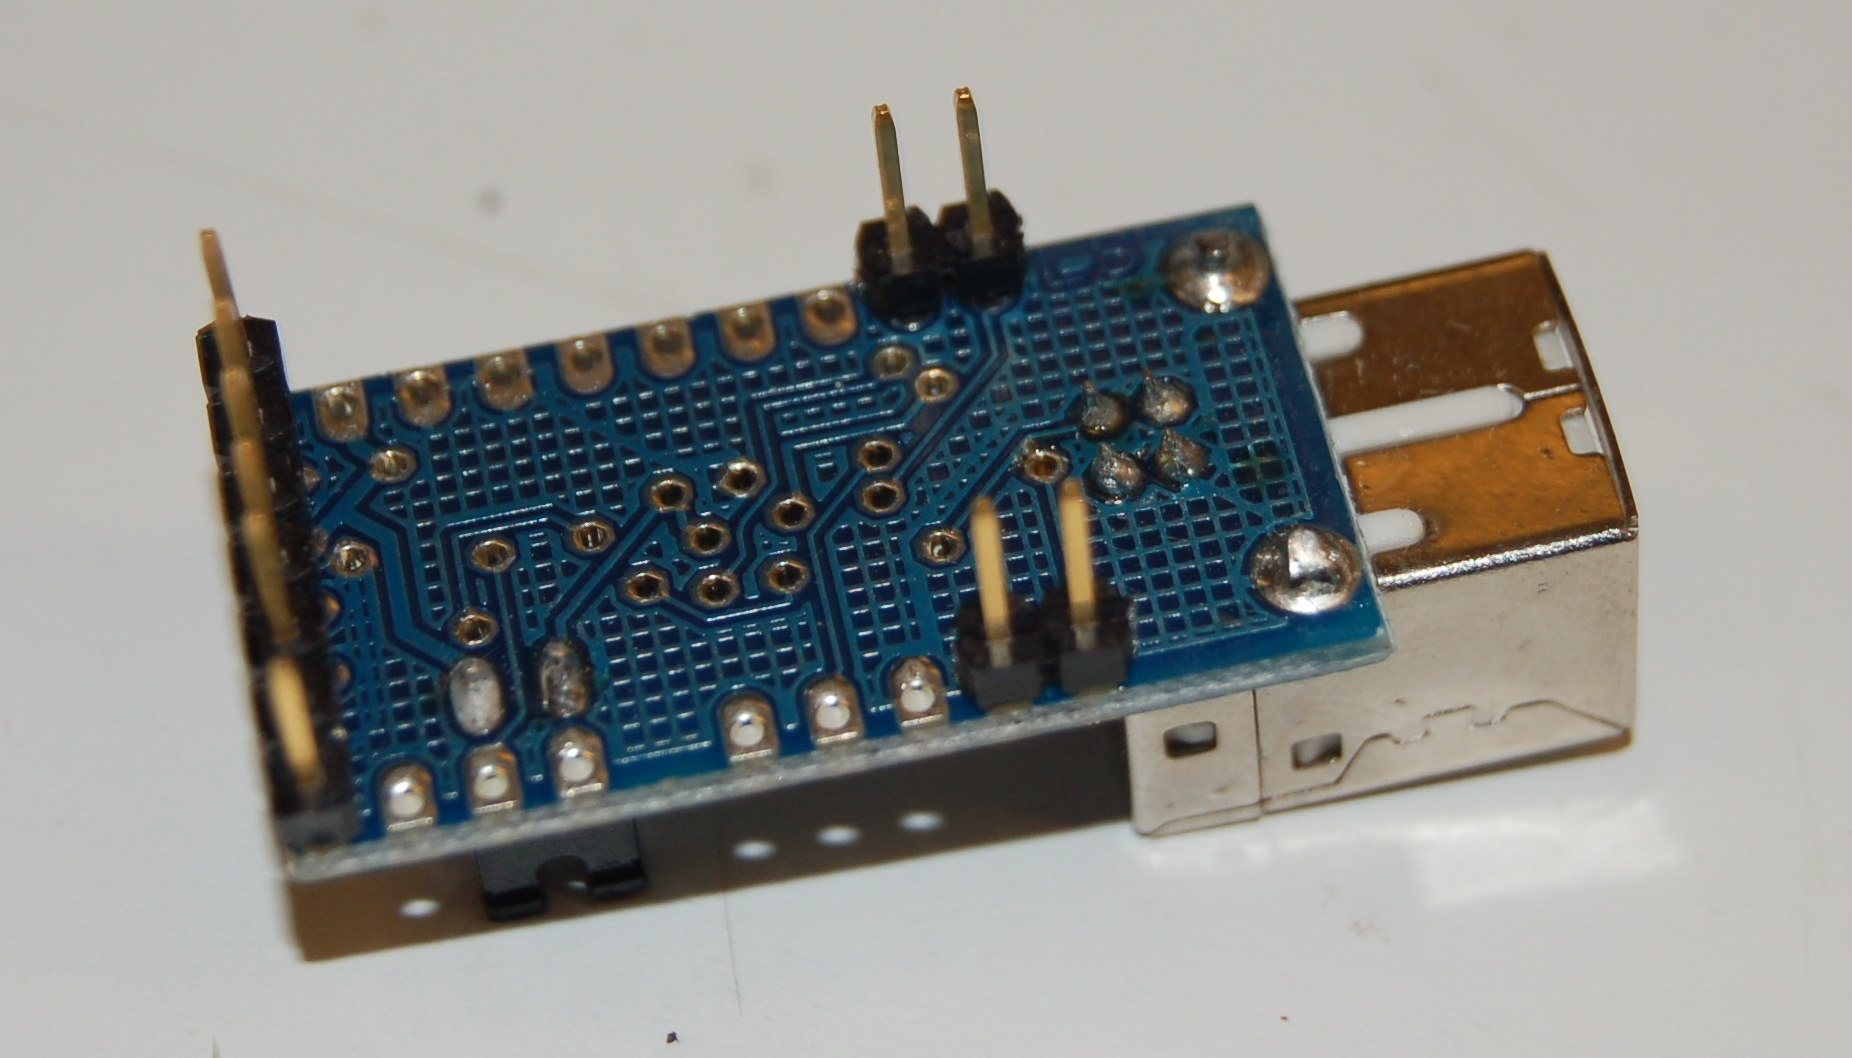 Building A Soprano T Stick Joseph Malloch Micro Usb 7 Pin Wiring Schematic Place The Arduino Mini And Adapter As Shown Solder In Connect Pins Diagram Below